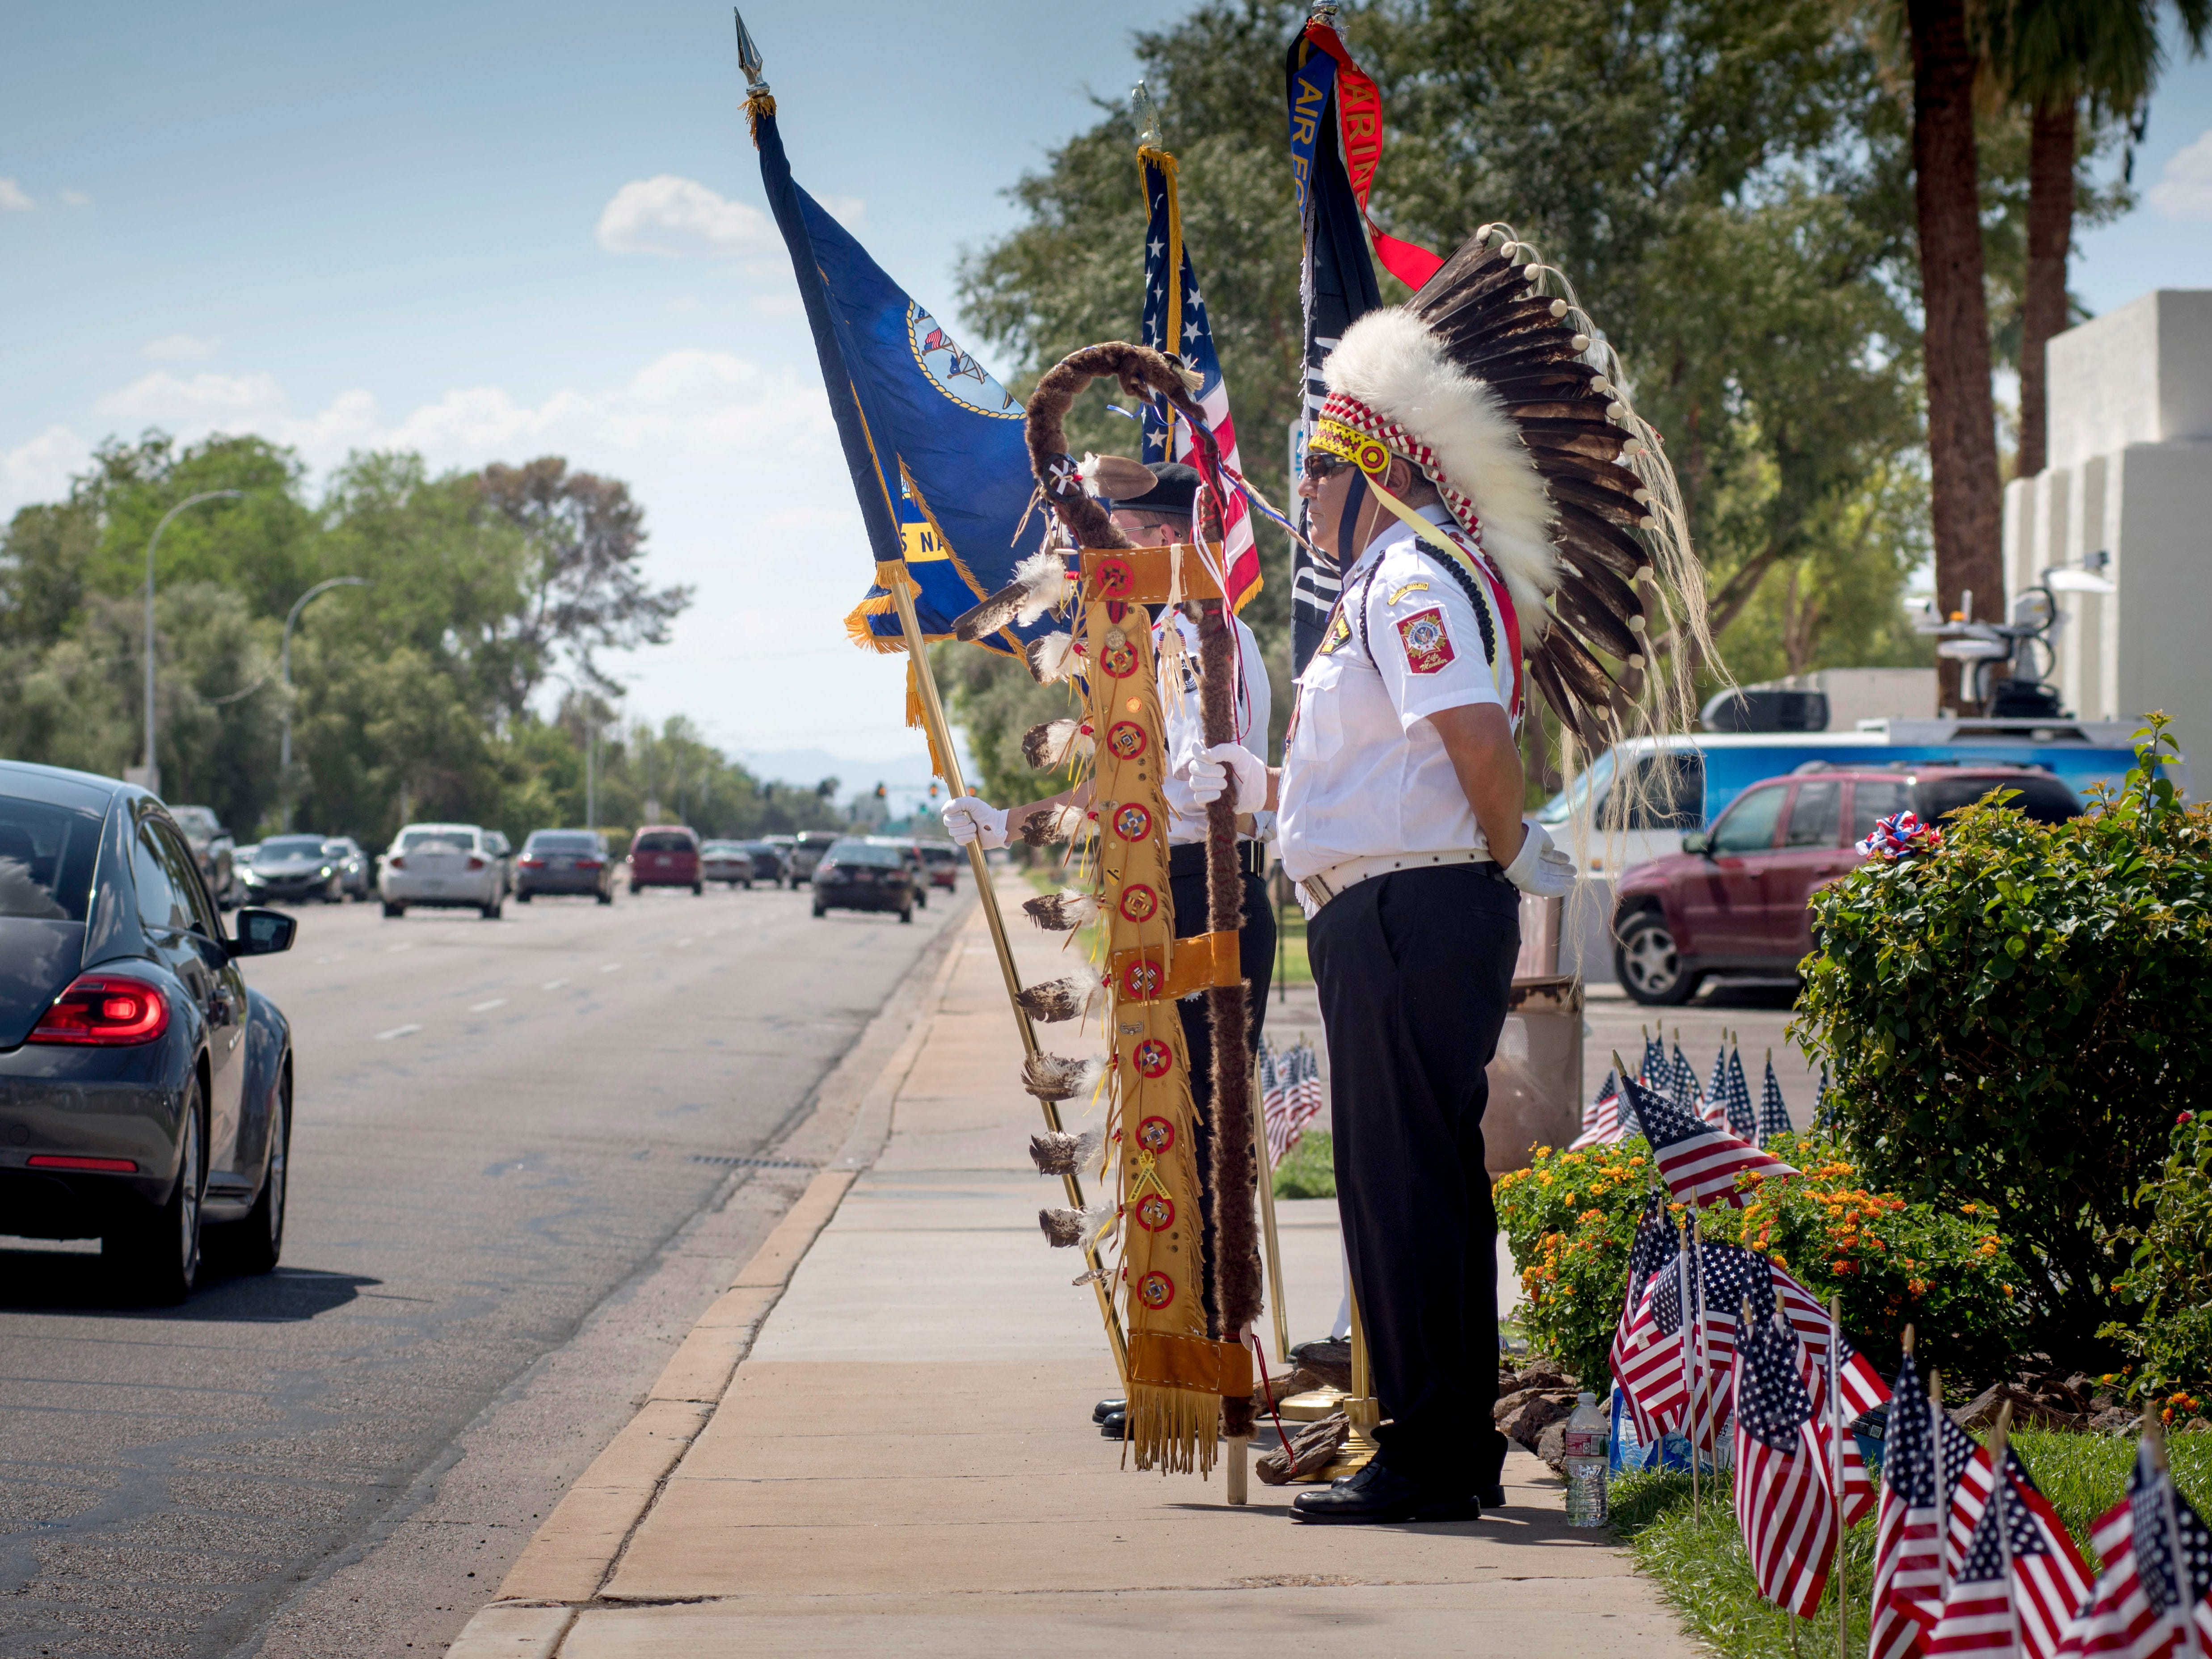 epa06975561 Richard Means, a member of the POW/MIA/KIA Honor Guard, as well as National American Indian Veterans, stands guard outside the mortuary where Senator John McCain was taken after his death from brain cancer, in Phoenix, Arizona, USA, 26 August, 2018. McCain's family announced on 24 August 2018 that he discontinued treatment for an aggressive brain cancer. McCain, a former Naval aviator, was shot down on a mission over Hanoi, in North Vietnam, in October 1967, and made a prisoner of war (POW) until 1973. He was the Republican nominee for President of the United States in the 2008 election, which he lost to Barack Obama. Menas is a member of the Cheyenne River Sioux Tribe of Eagle Butte, South Dakota.  EPA-EFE/RICK D'ELIA ORG XMIT: RDL